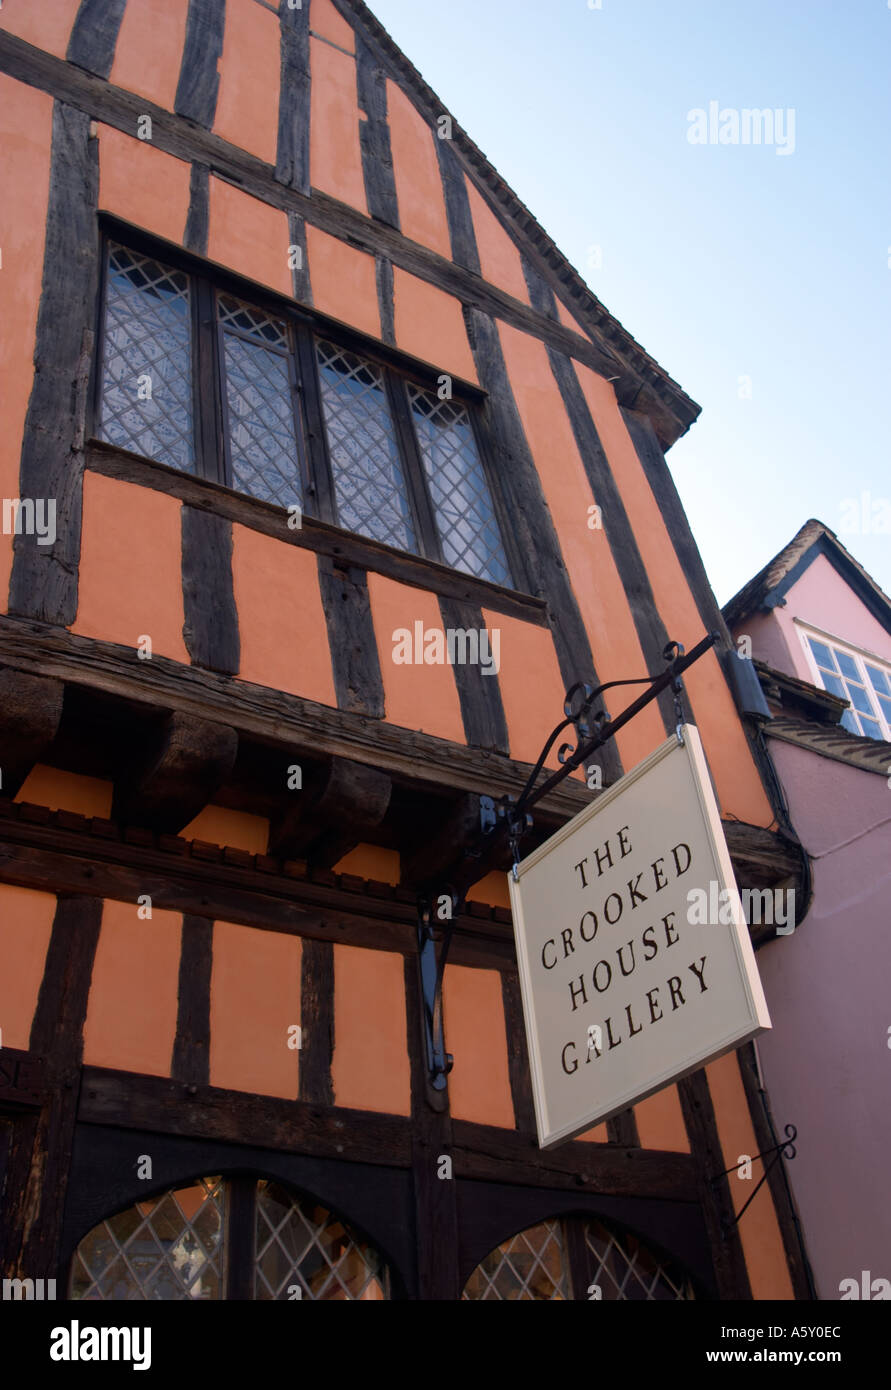 The Crooked House Lavenham Suffolk England - Stock Image